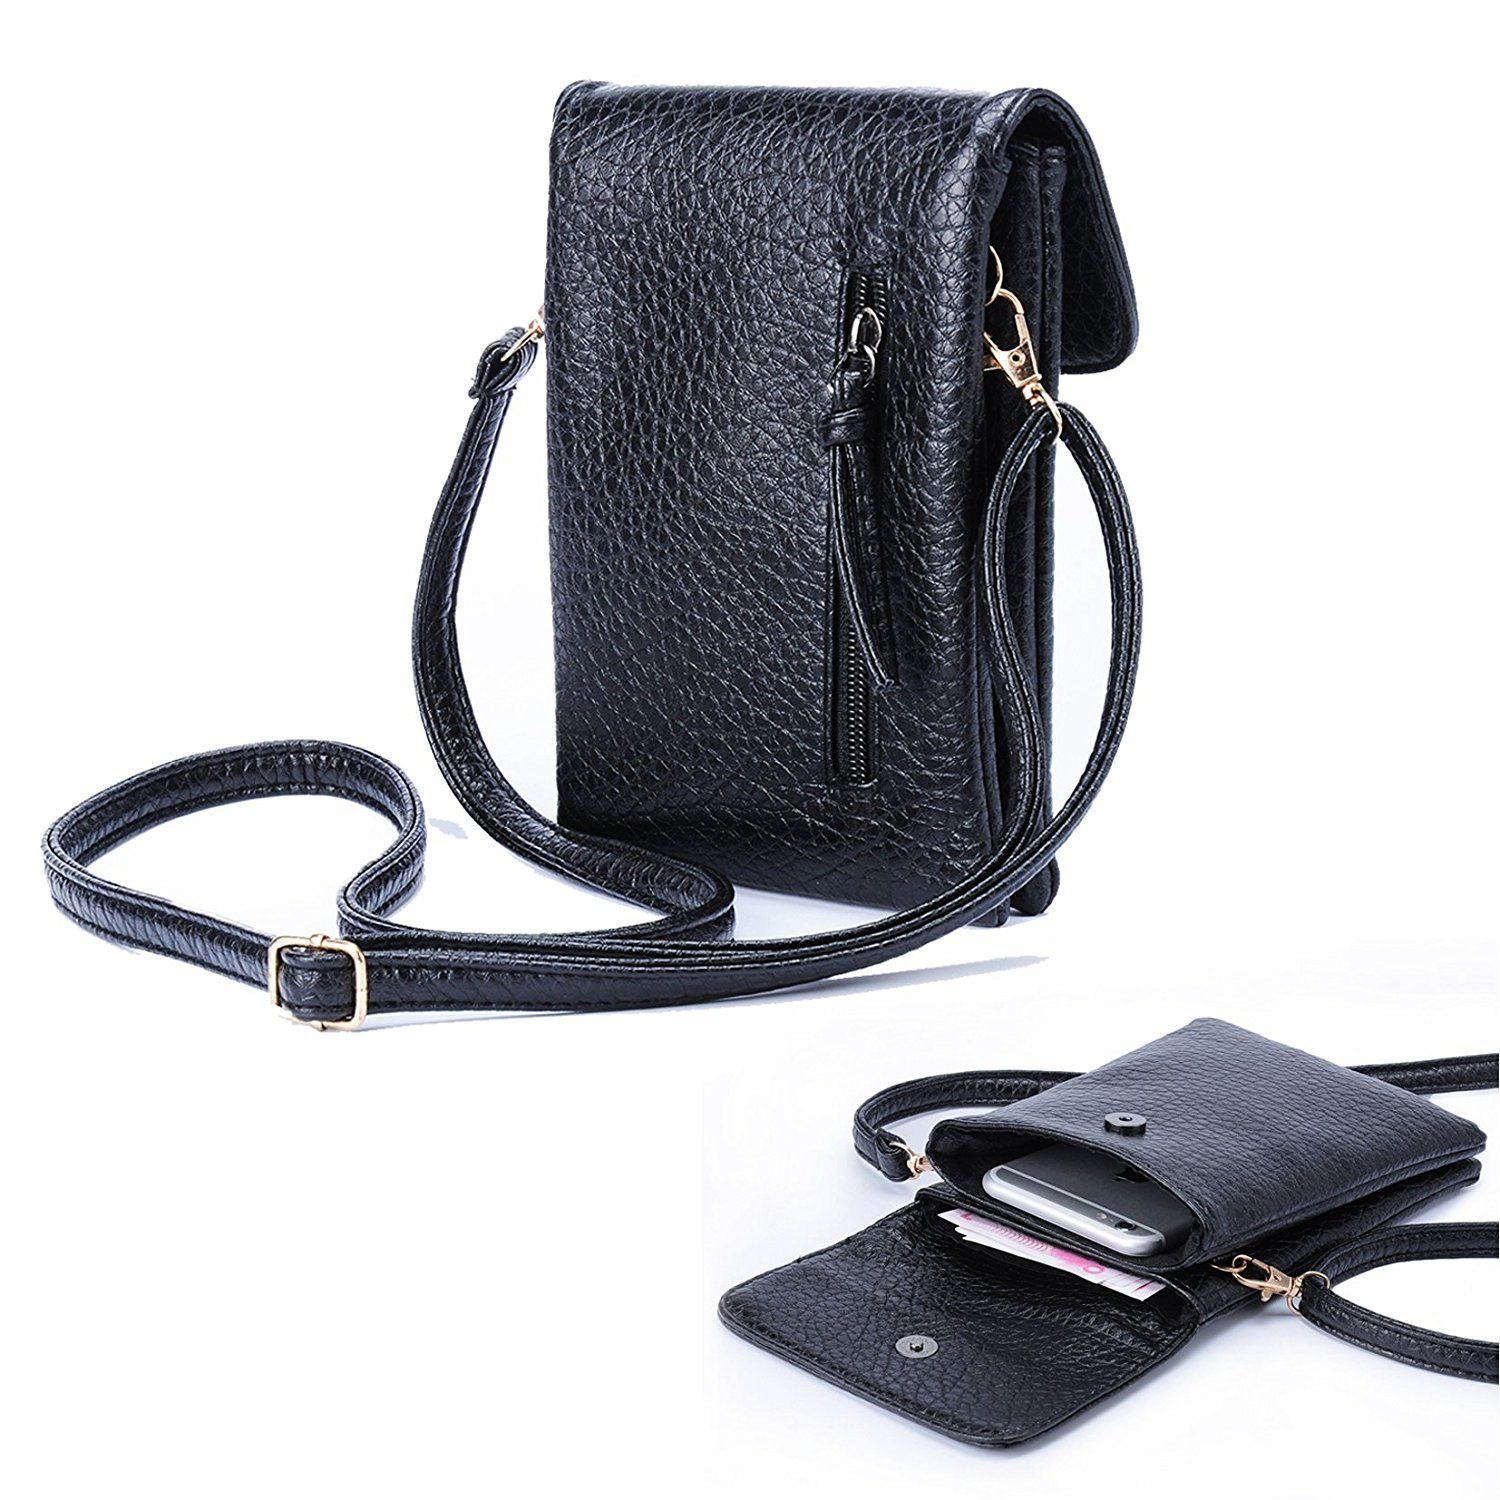 aed1c35aa5f2 Katloo PU Leather Small Crossbody Bag Wallet Purse Cellphone Pouch with Shoulder  Strap for Women Girls -- To view further for this item